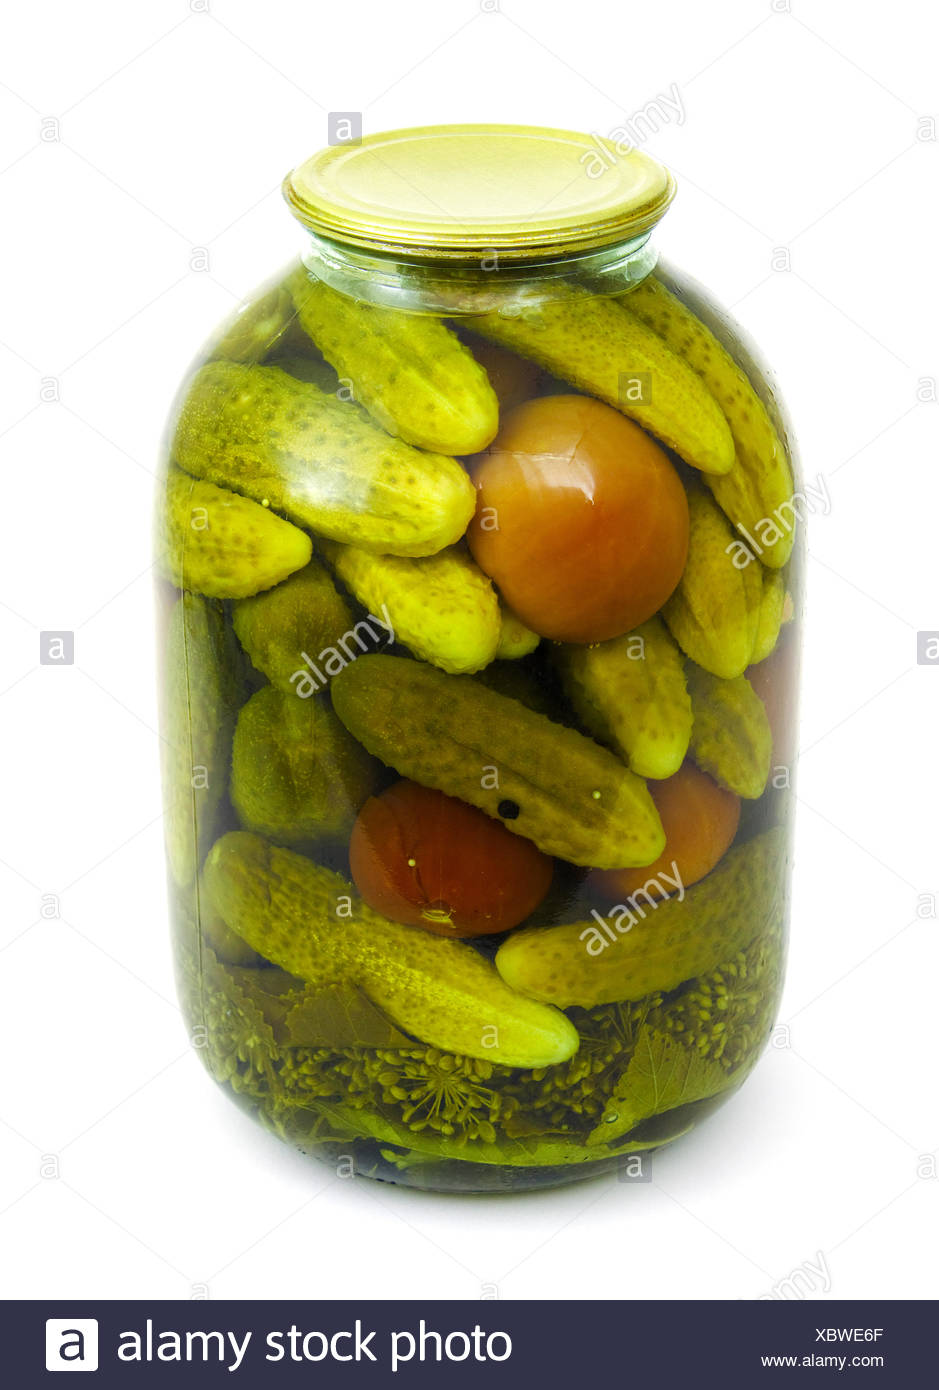 Receptacle with tinned tomatoes and cucumbers - Stock Image